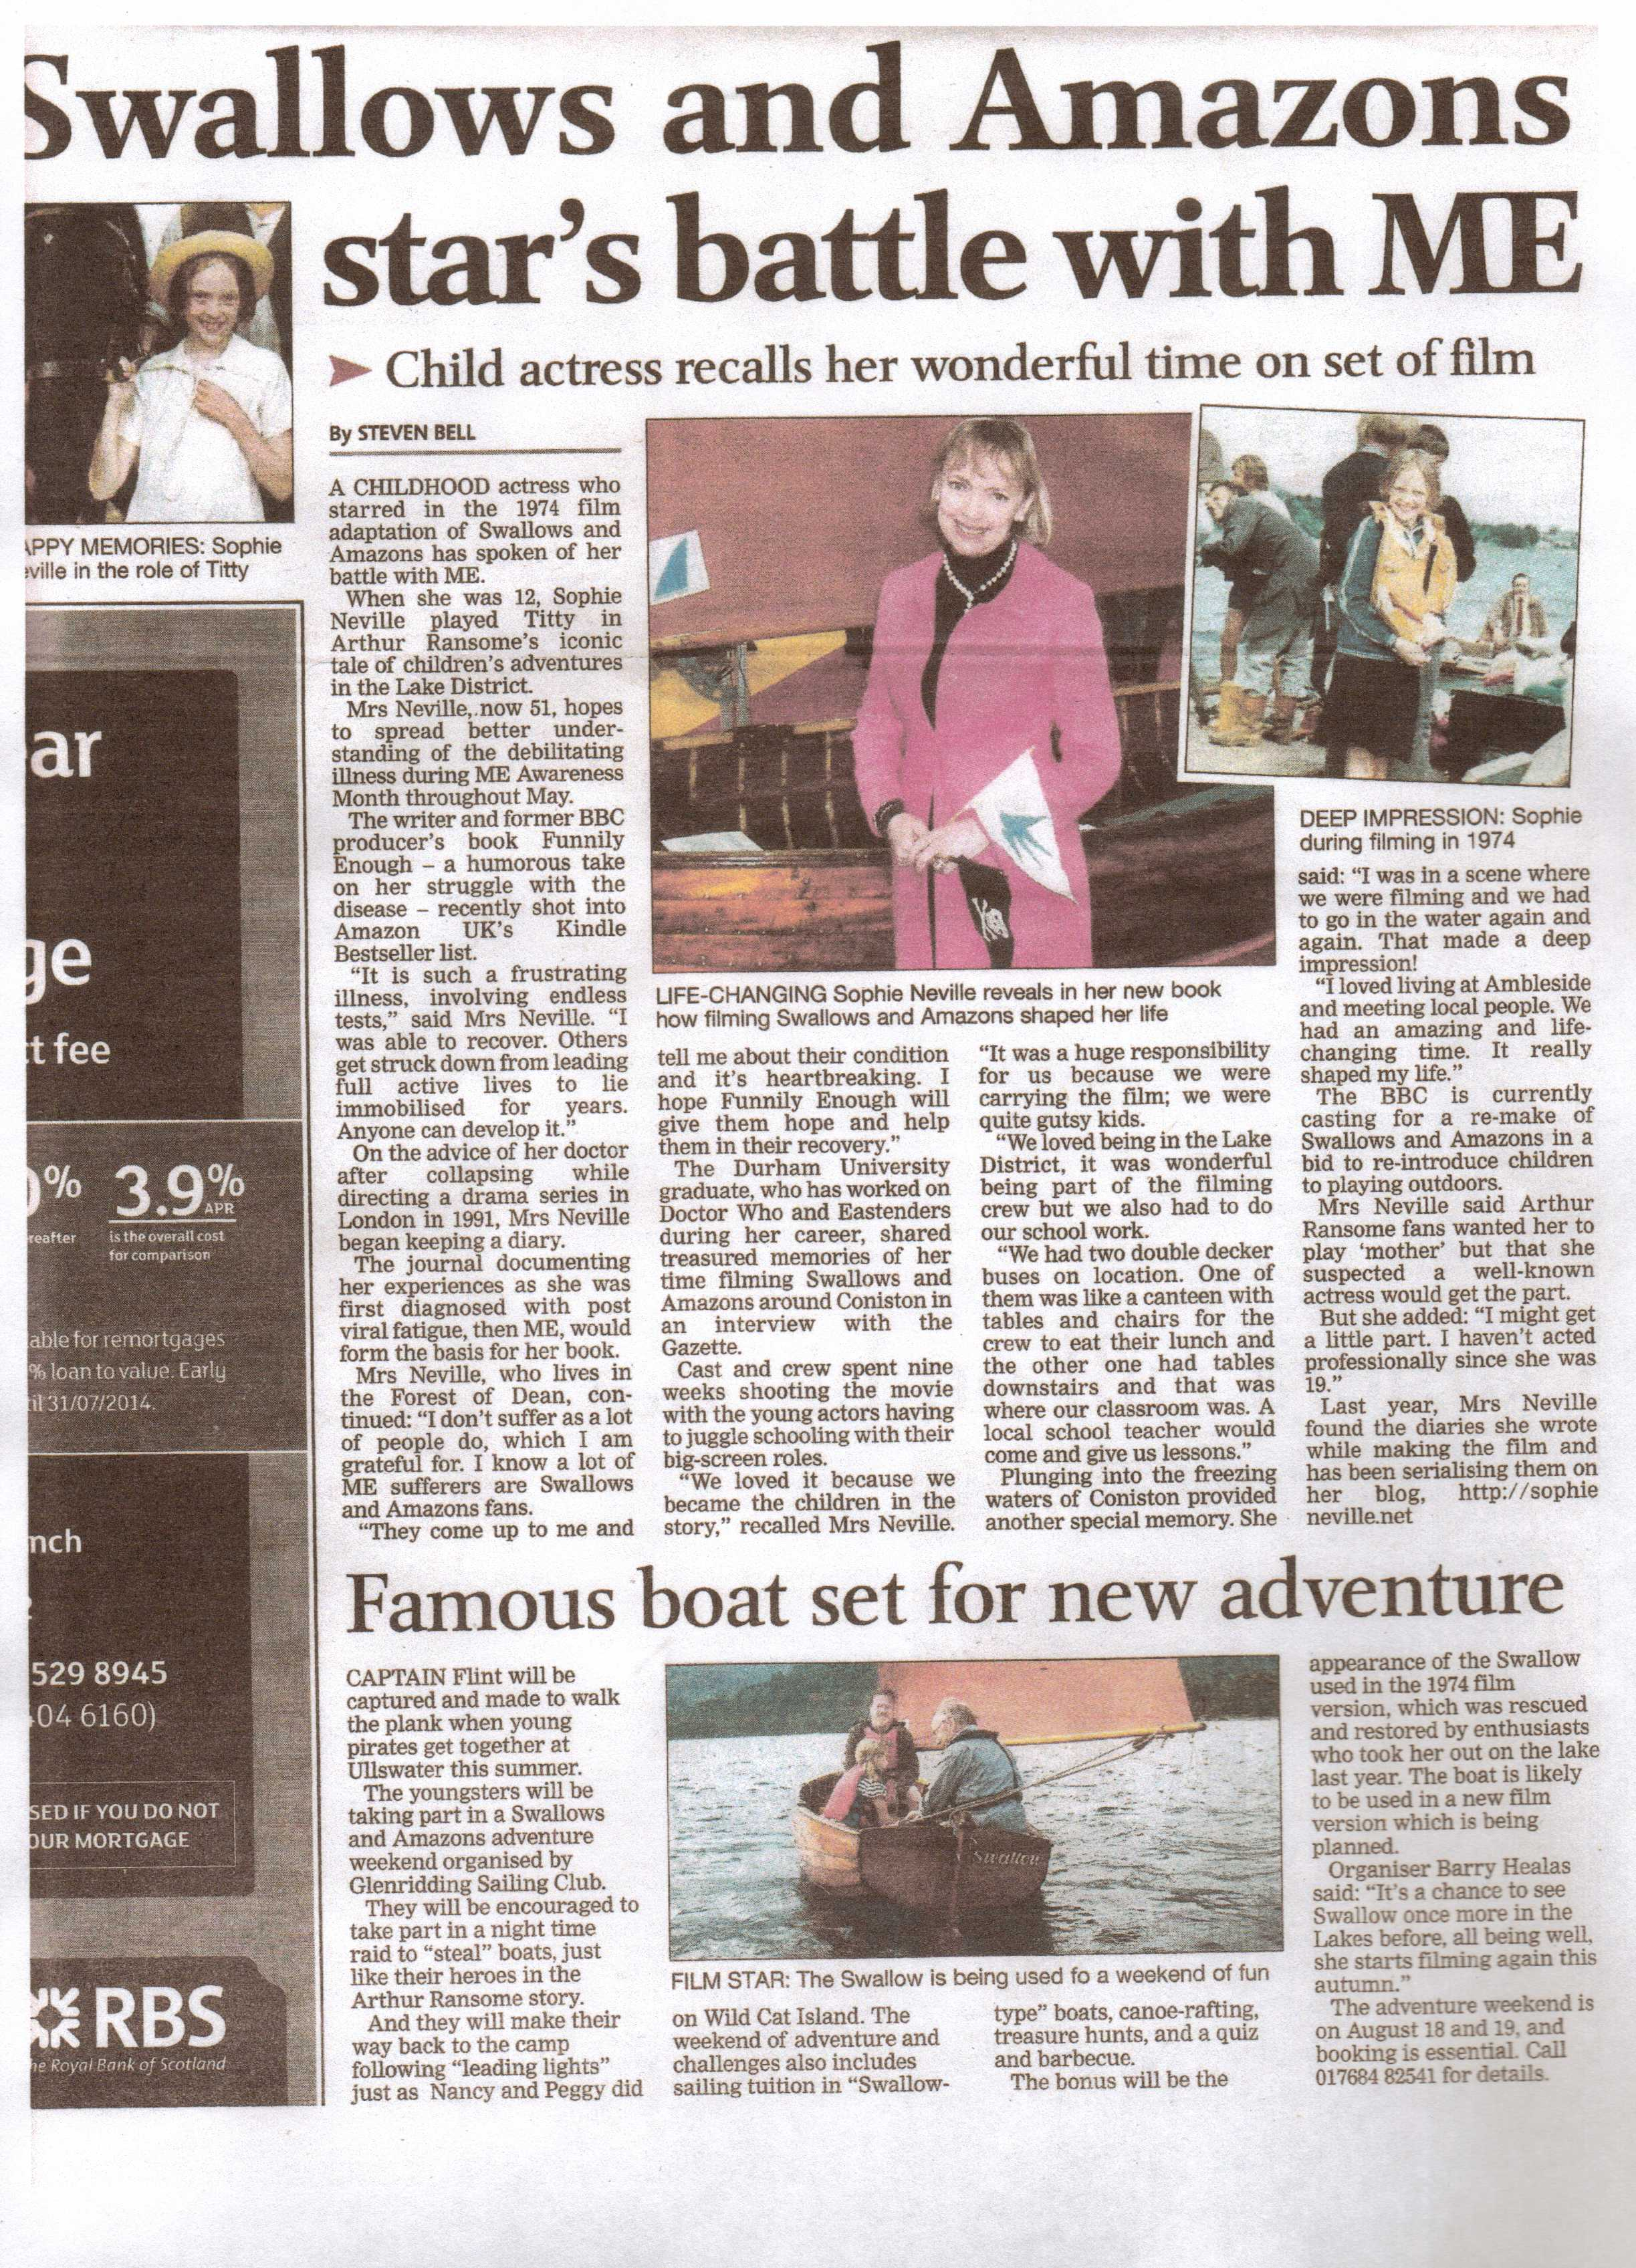 Westmorland Gazette review of Funnily Enough by Sophie Neville